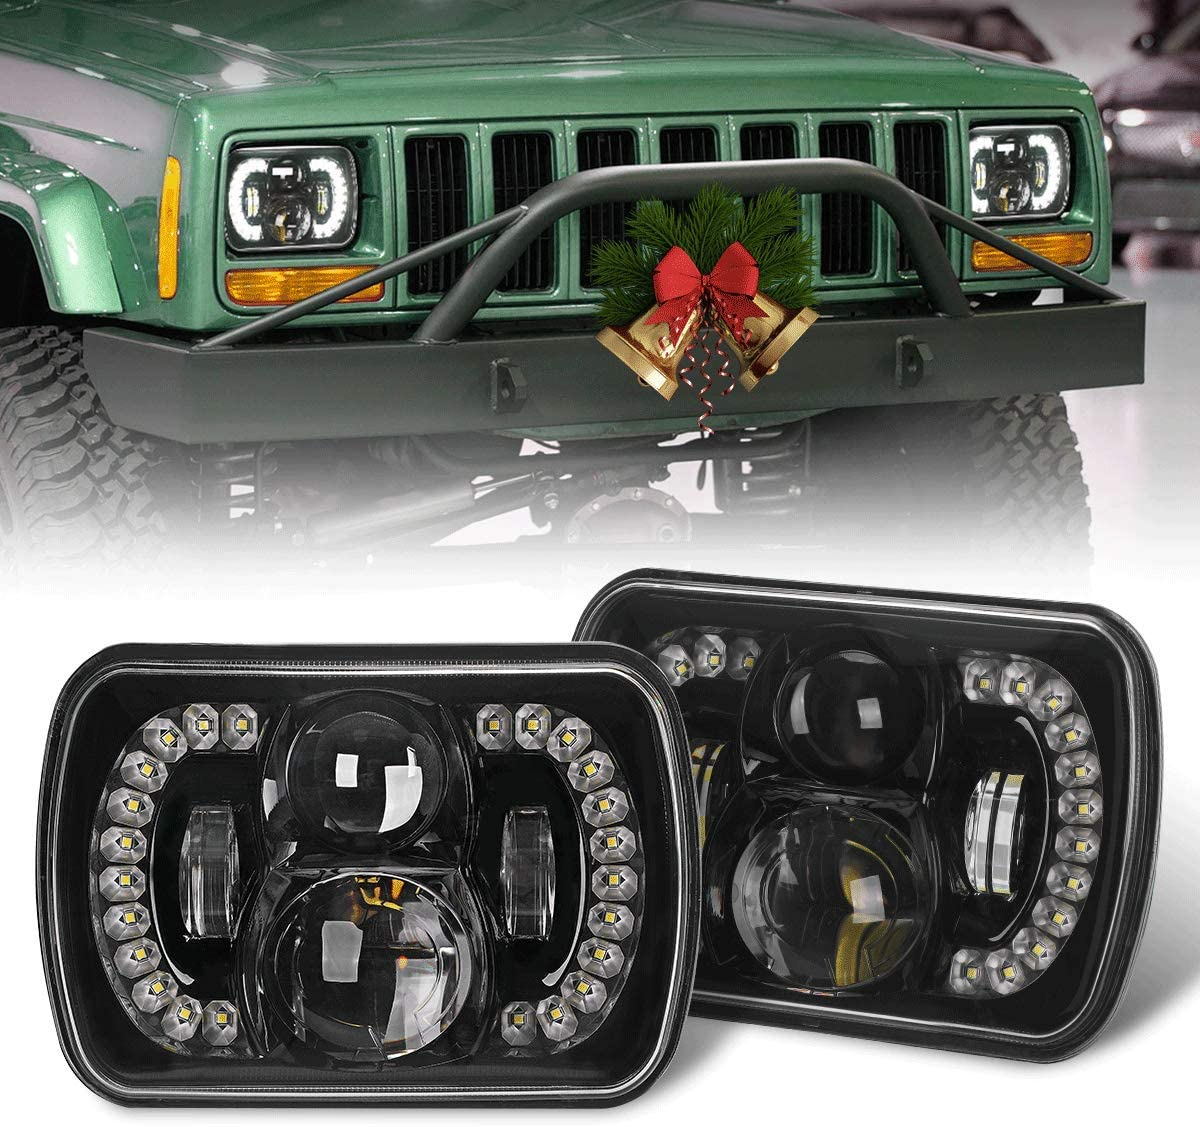 Yorkim Upgrated Newest 5x7 Led Headlights H6054 Headlight 7x6 inch Sealed Beam Square Headlamp with High Low Beam Dot Lights for Jeep Wrangler YJ Cherokee XJ 6054 H5054 H6054LL 6052 6053 Pack of 2